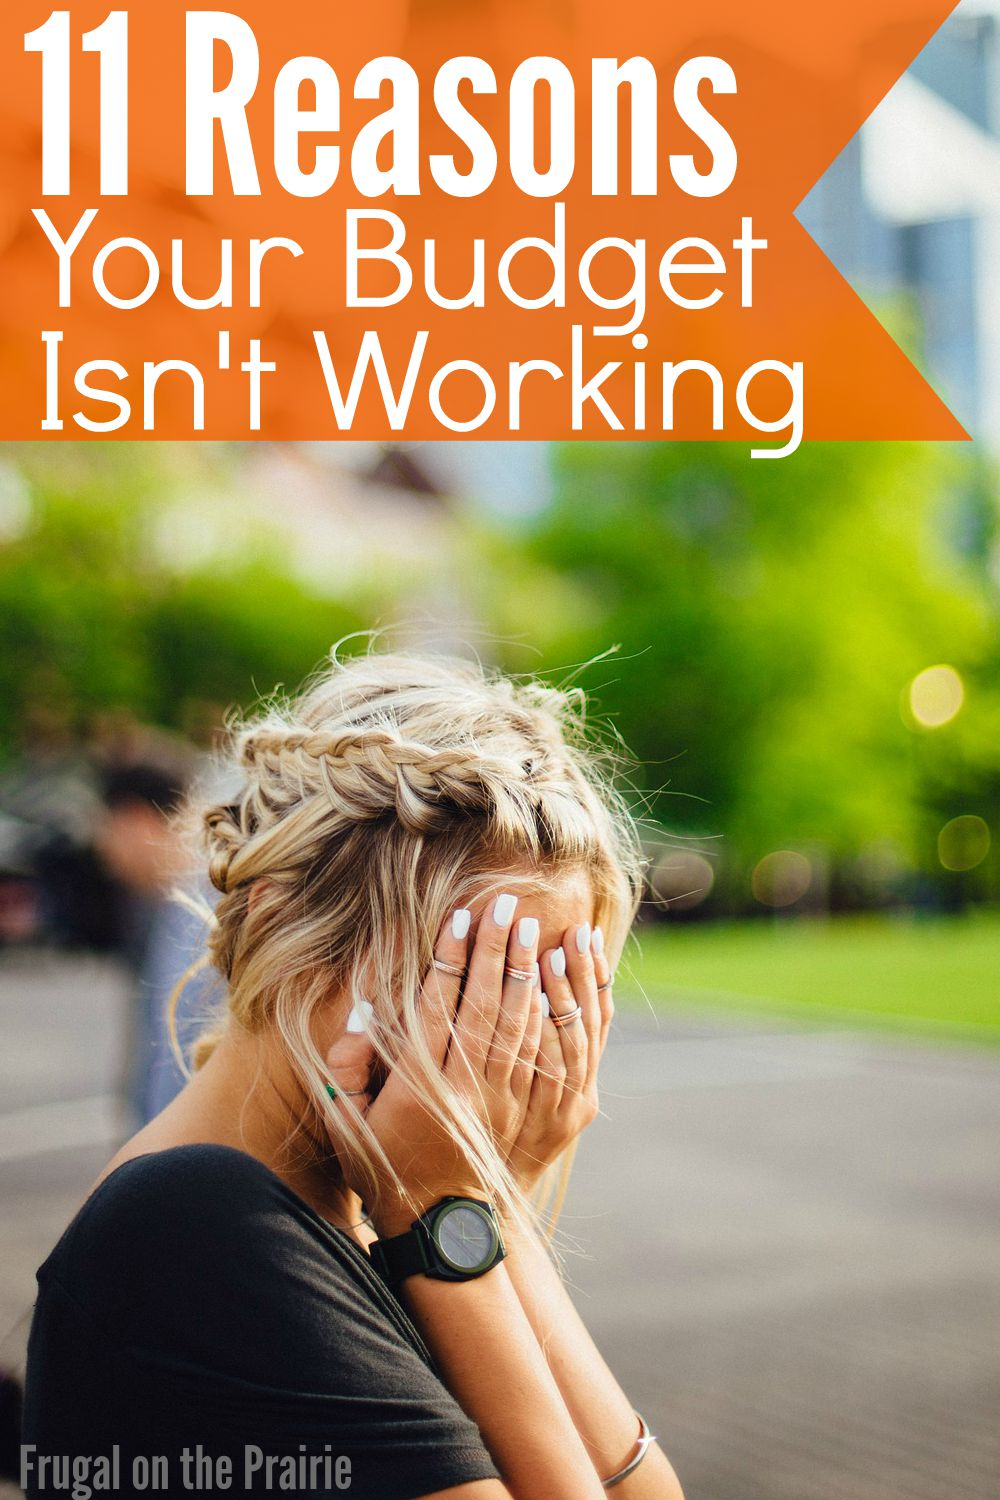 Tired of feeling like your budget isn't working? Here are 11 reasons your budget is failing or might be weak. It could be an easier fix than you think!